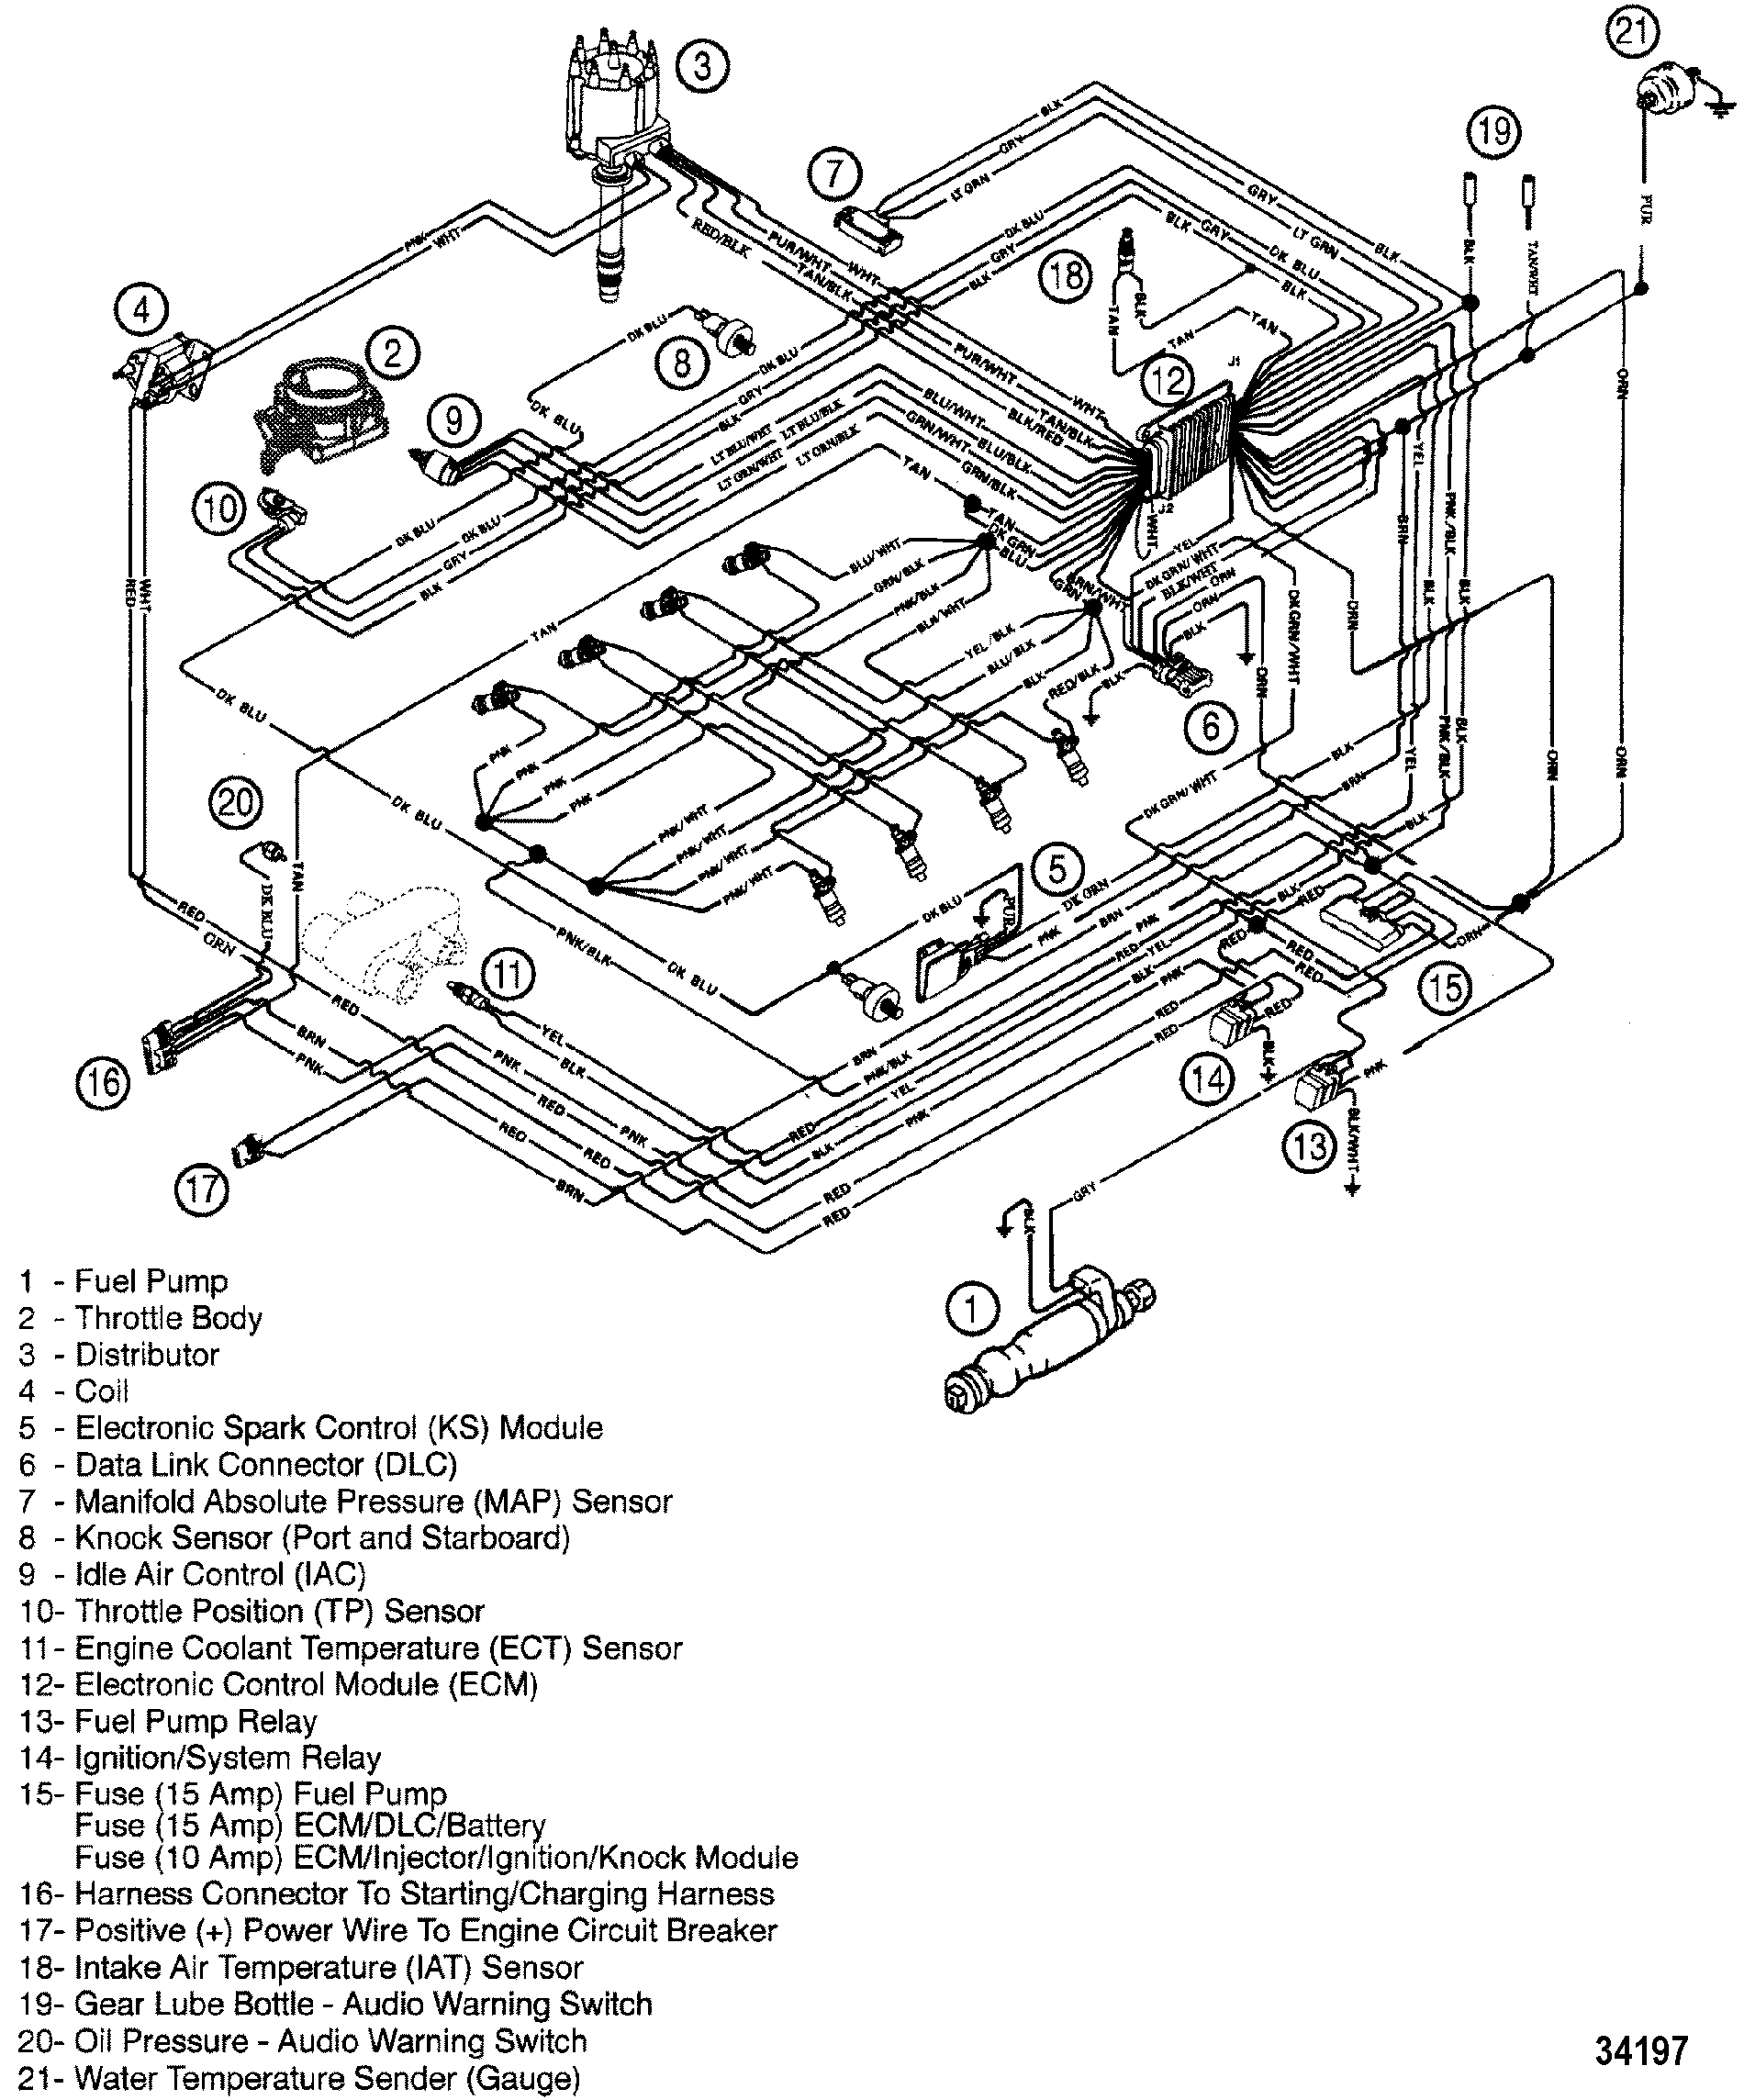 454 engine block diagram schematics wiring diagrams u2022 rh seniorlivinguniversity co crusader 454 engine diagram 454 engine firing order diagram